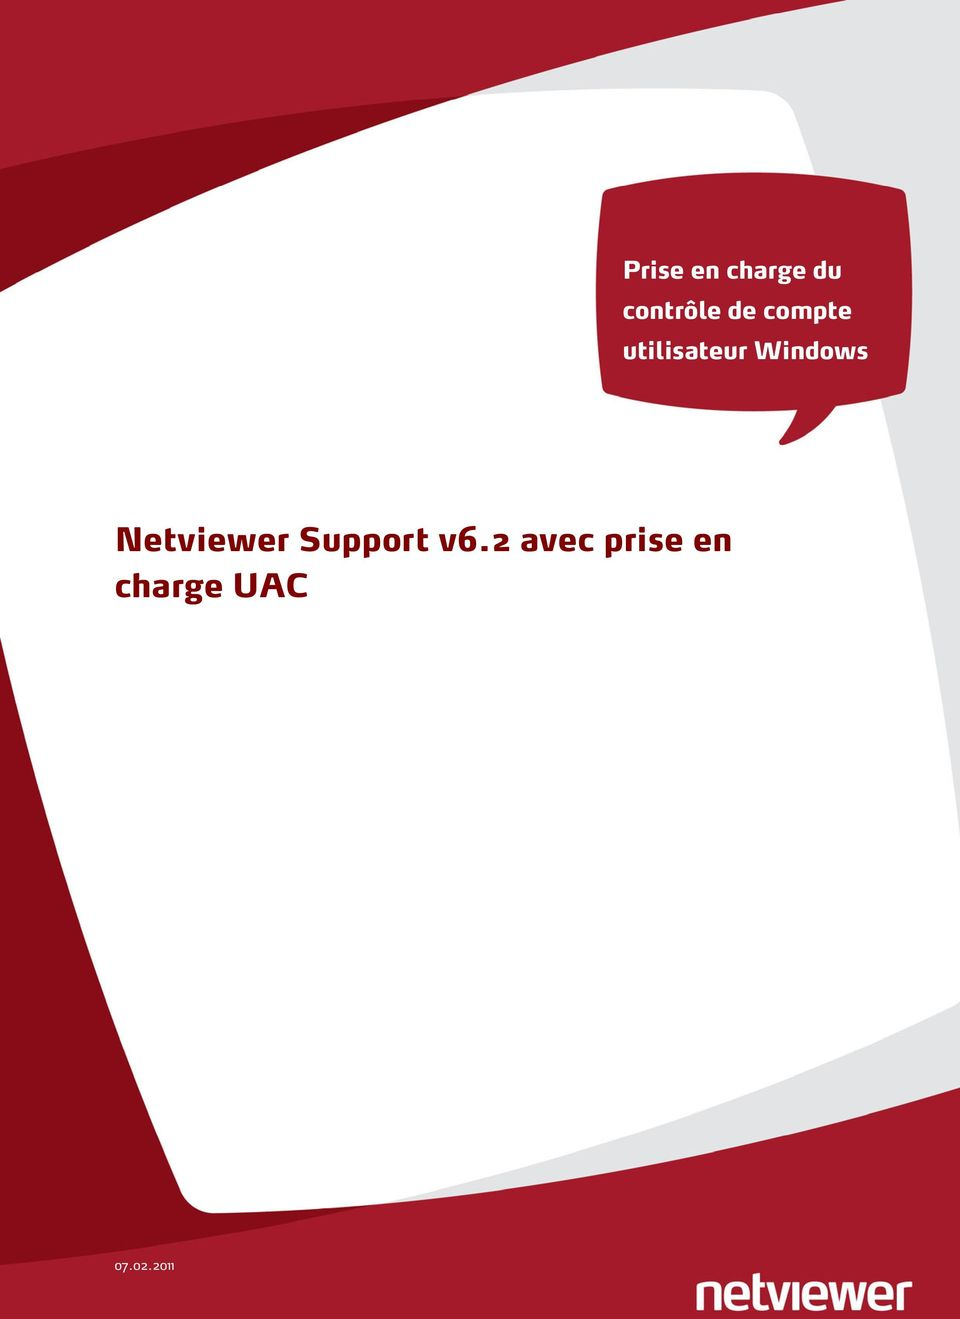 Windows Netviewer Support v6.